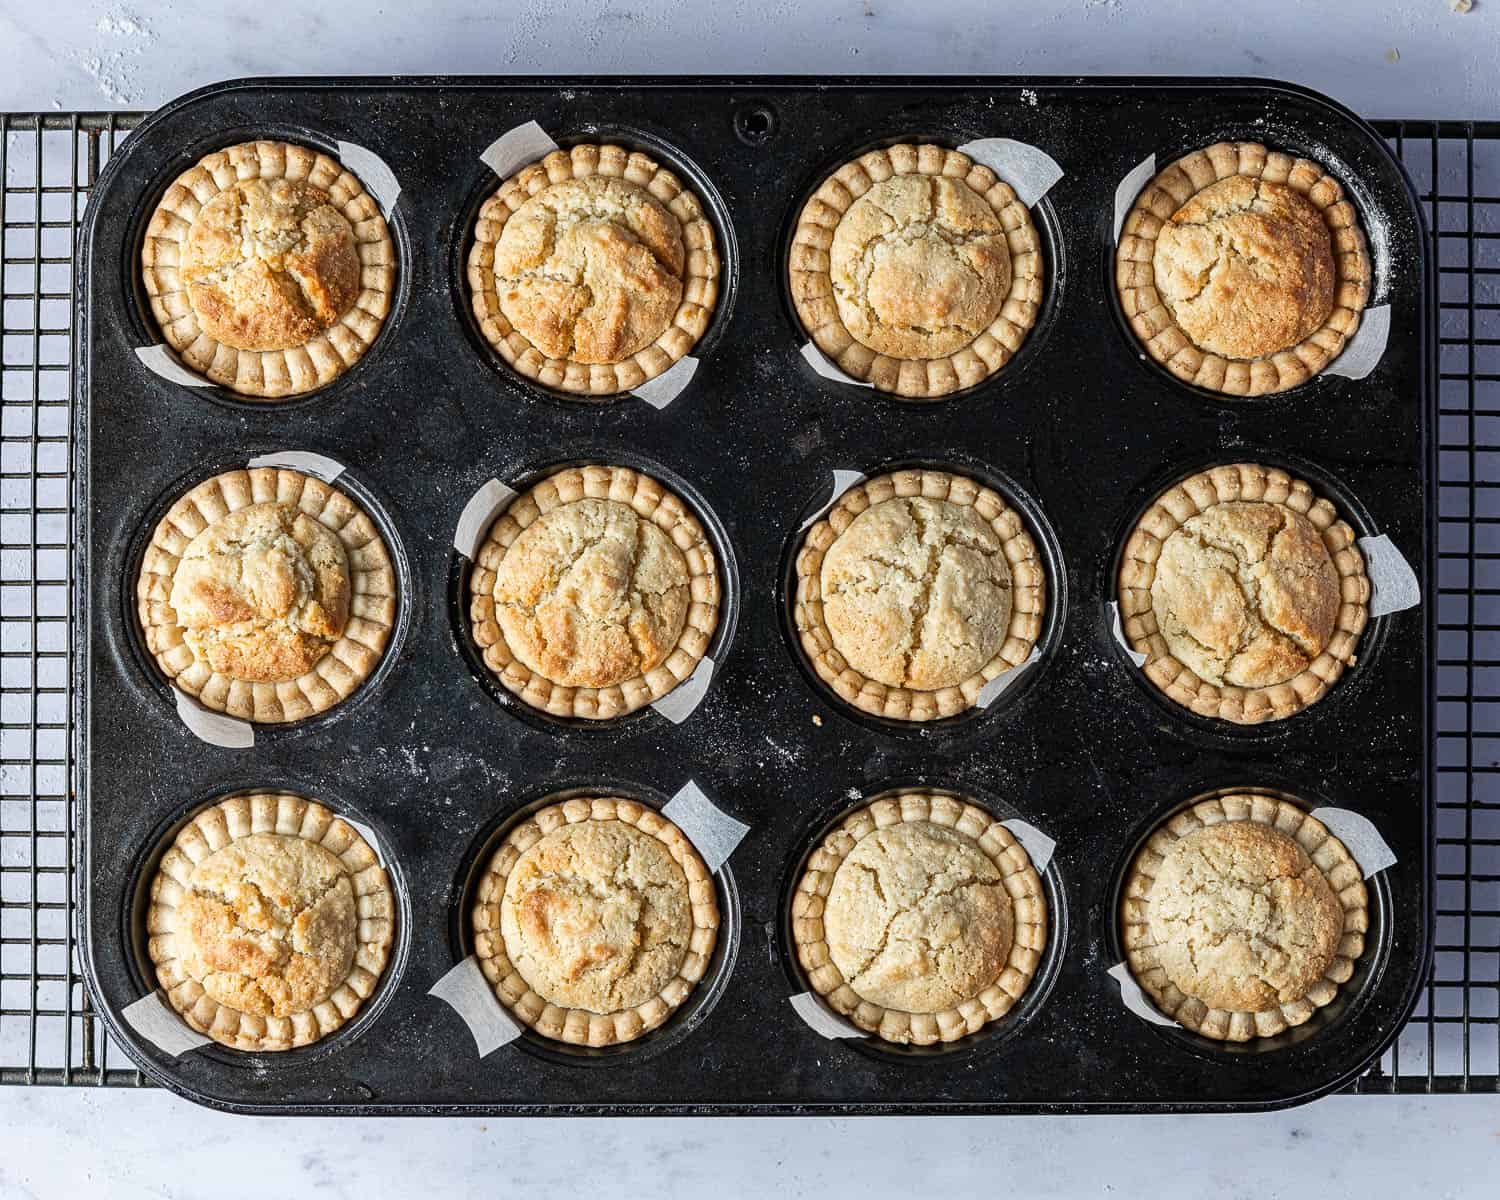 The baked tarts in the muffin tin.